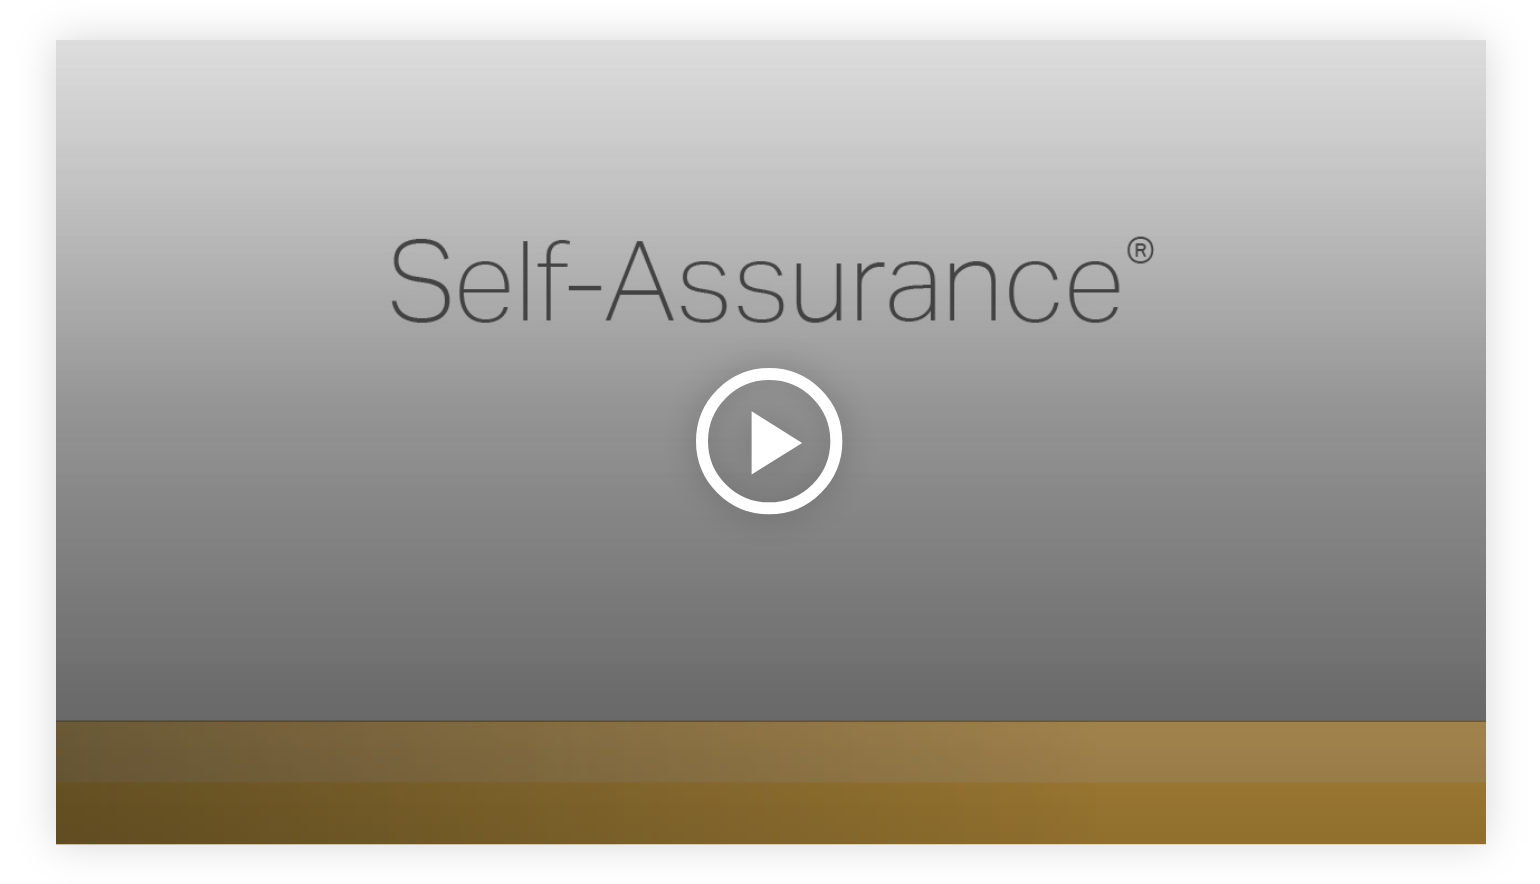 Play video: Self-Assurance - Learn more about your innate talents from Gallup's Clifton StrengthsFinder!